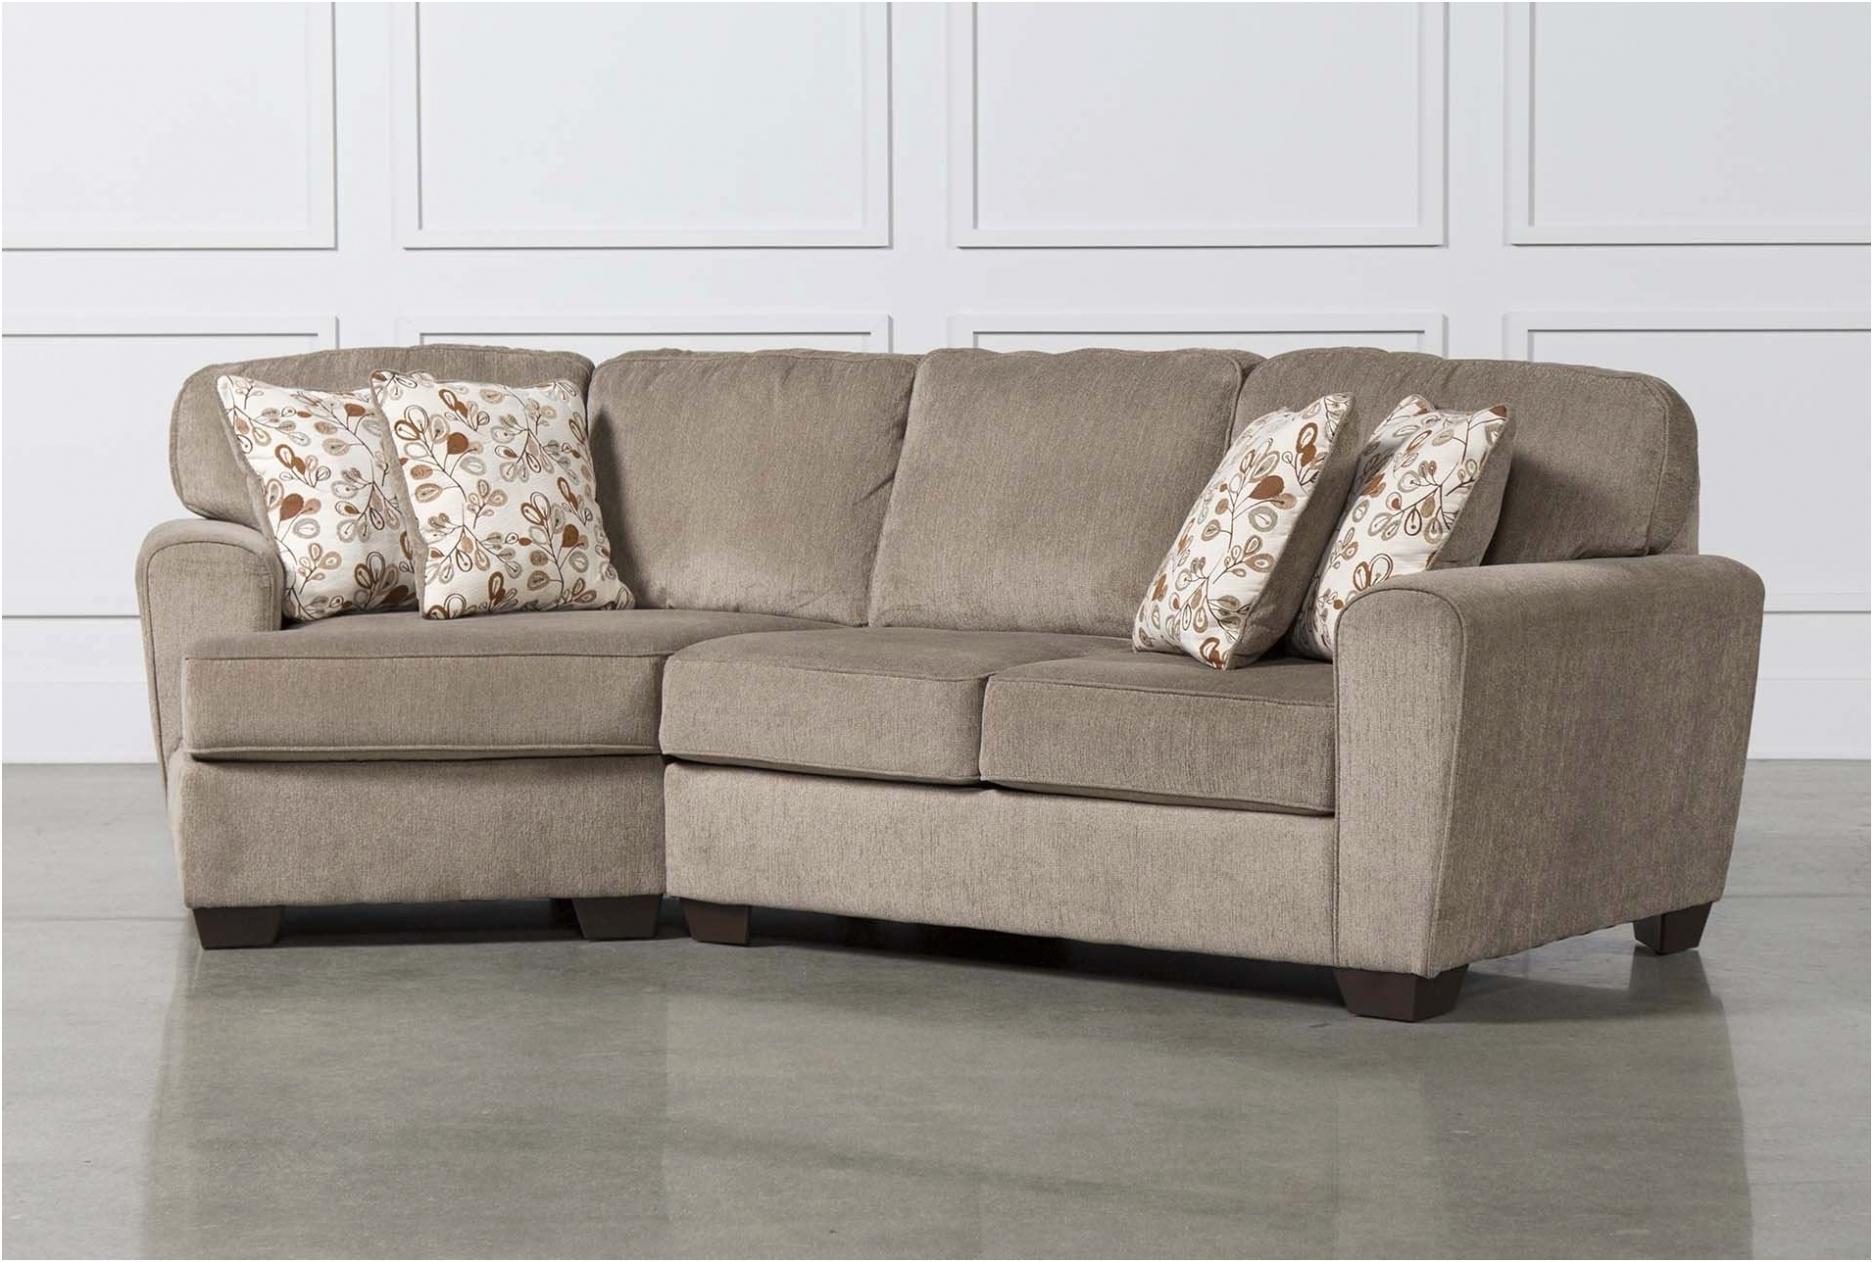 Living Spaces Sectional Sofa Bed - Sofa Design Ideas within Aquarius Light Grey 2 Piece Sectionals With Raf Chaise (Image 19 of 30)